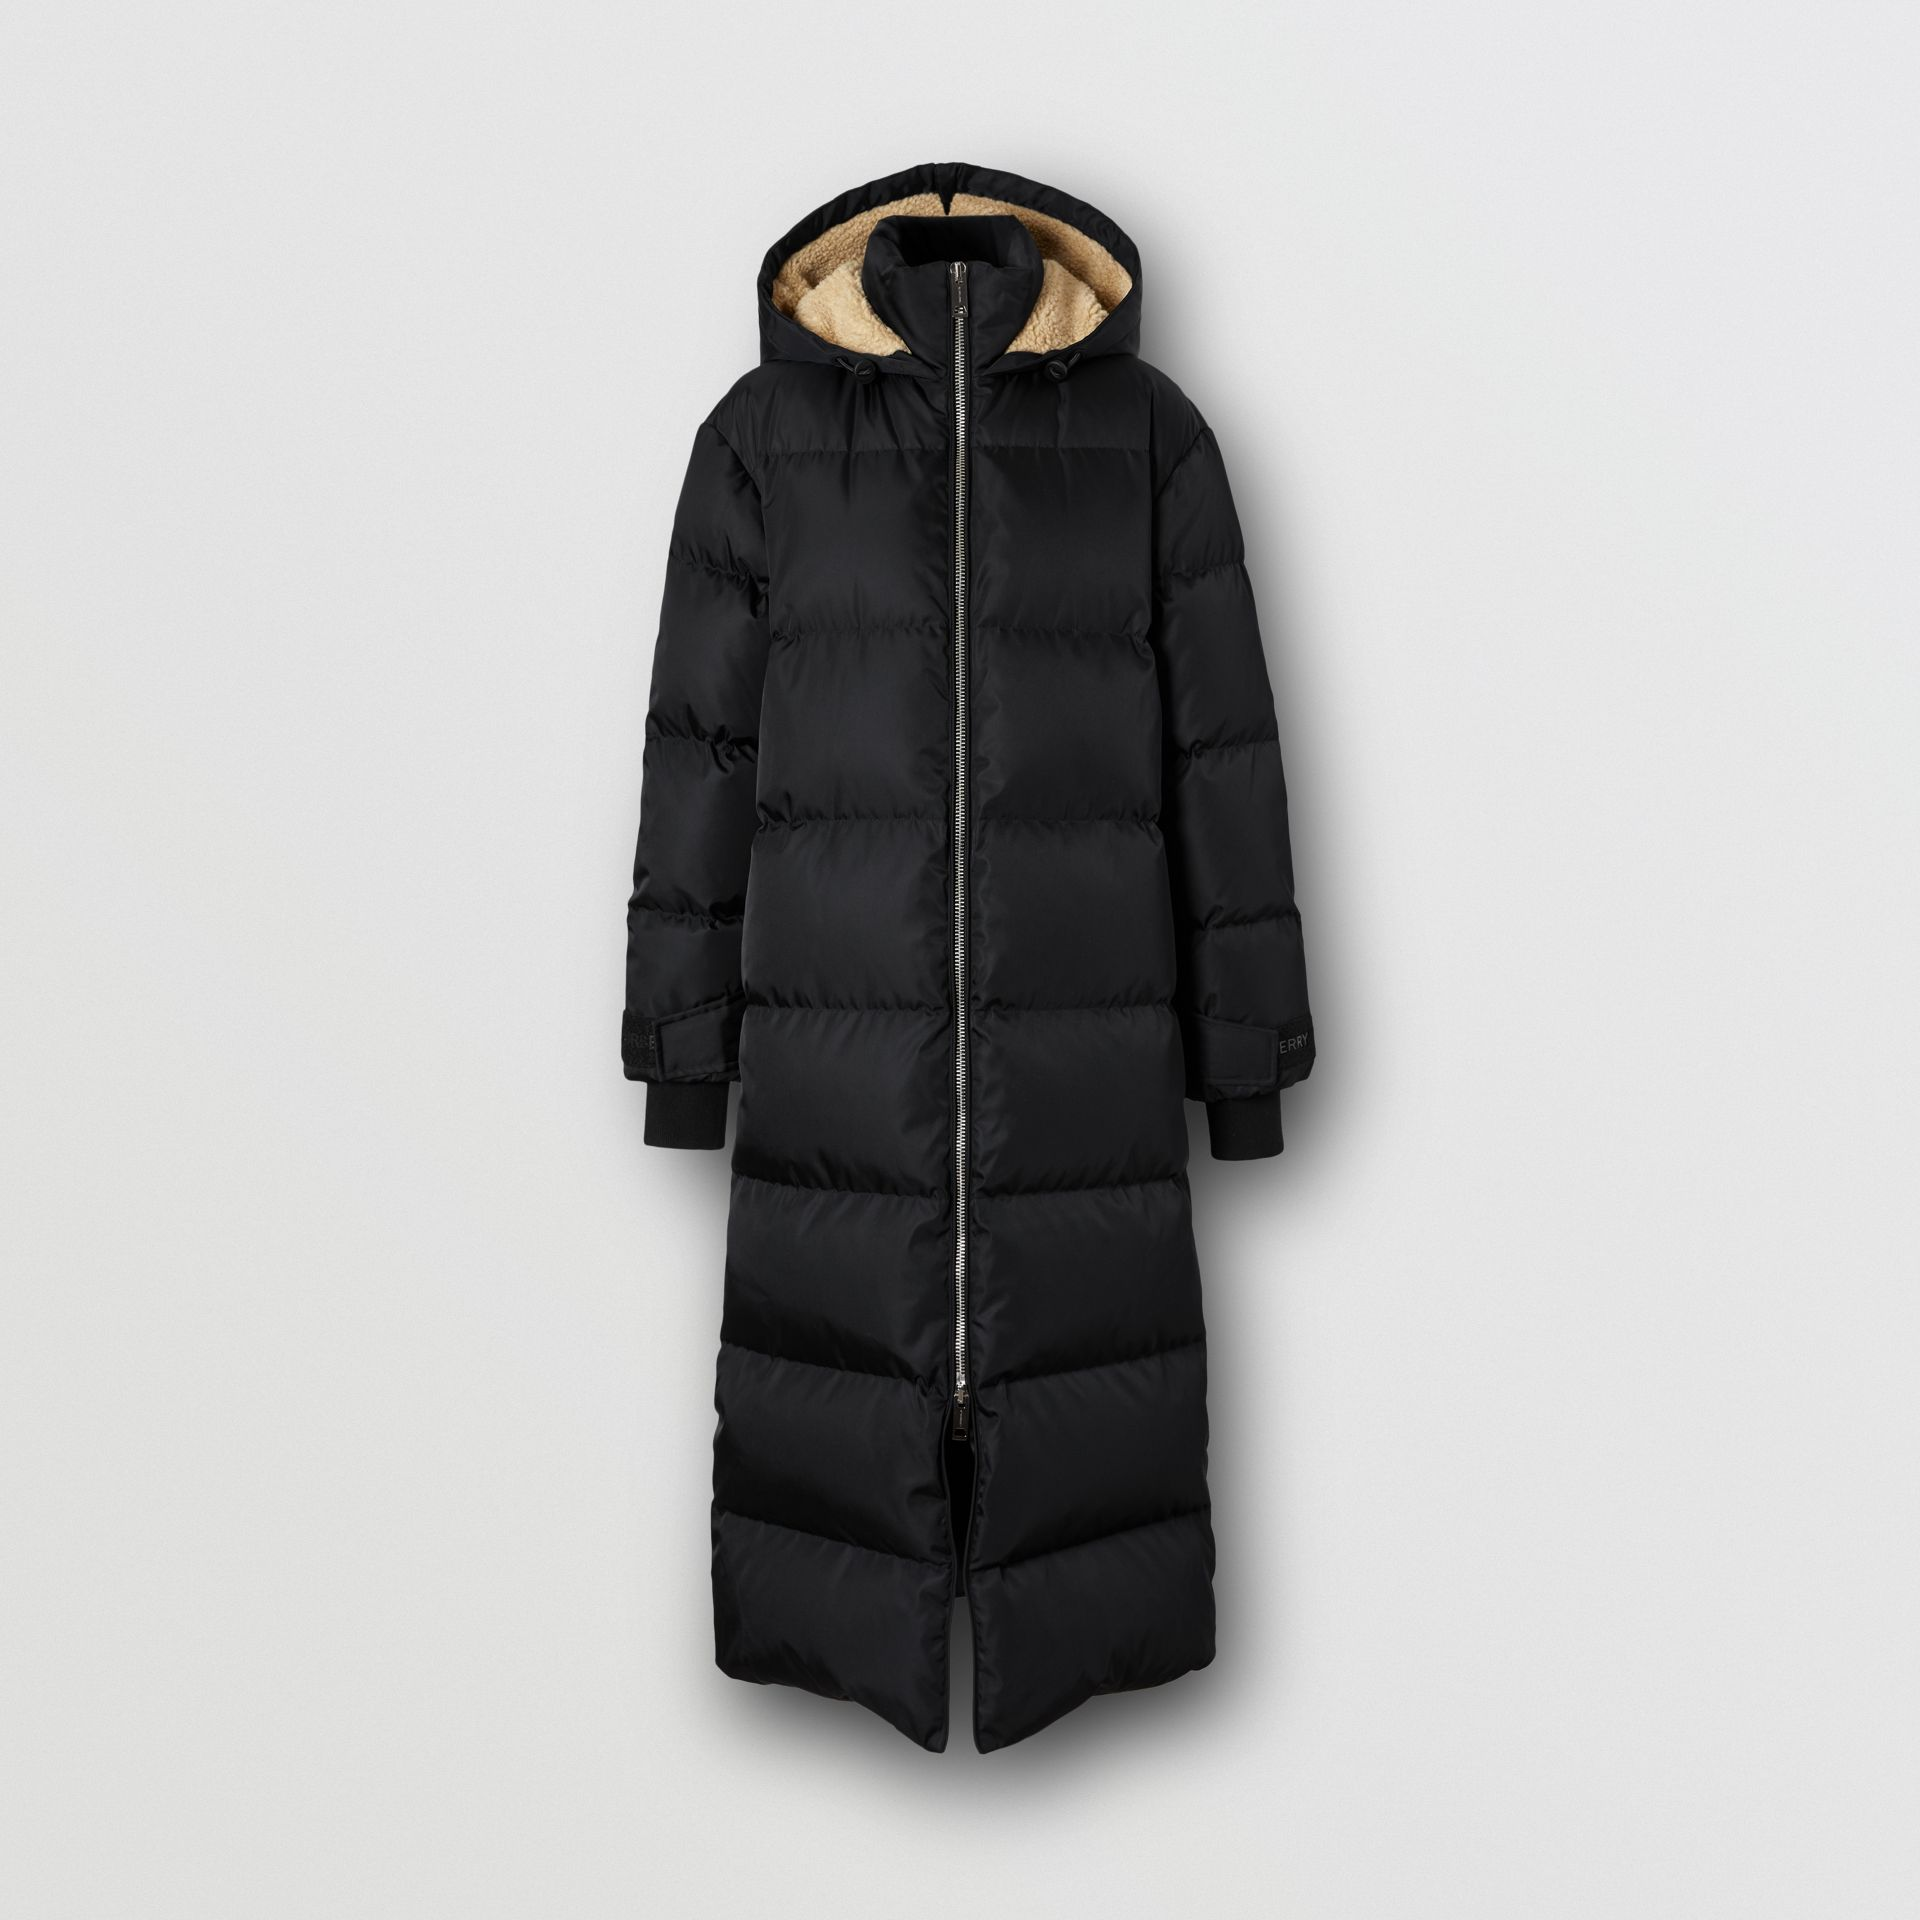 Logo Detail Puffer Coat in Black - Women | Burberry Singapore - gallery image 3